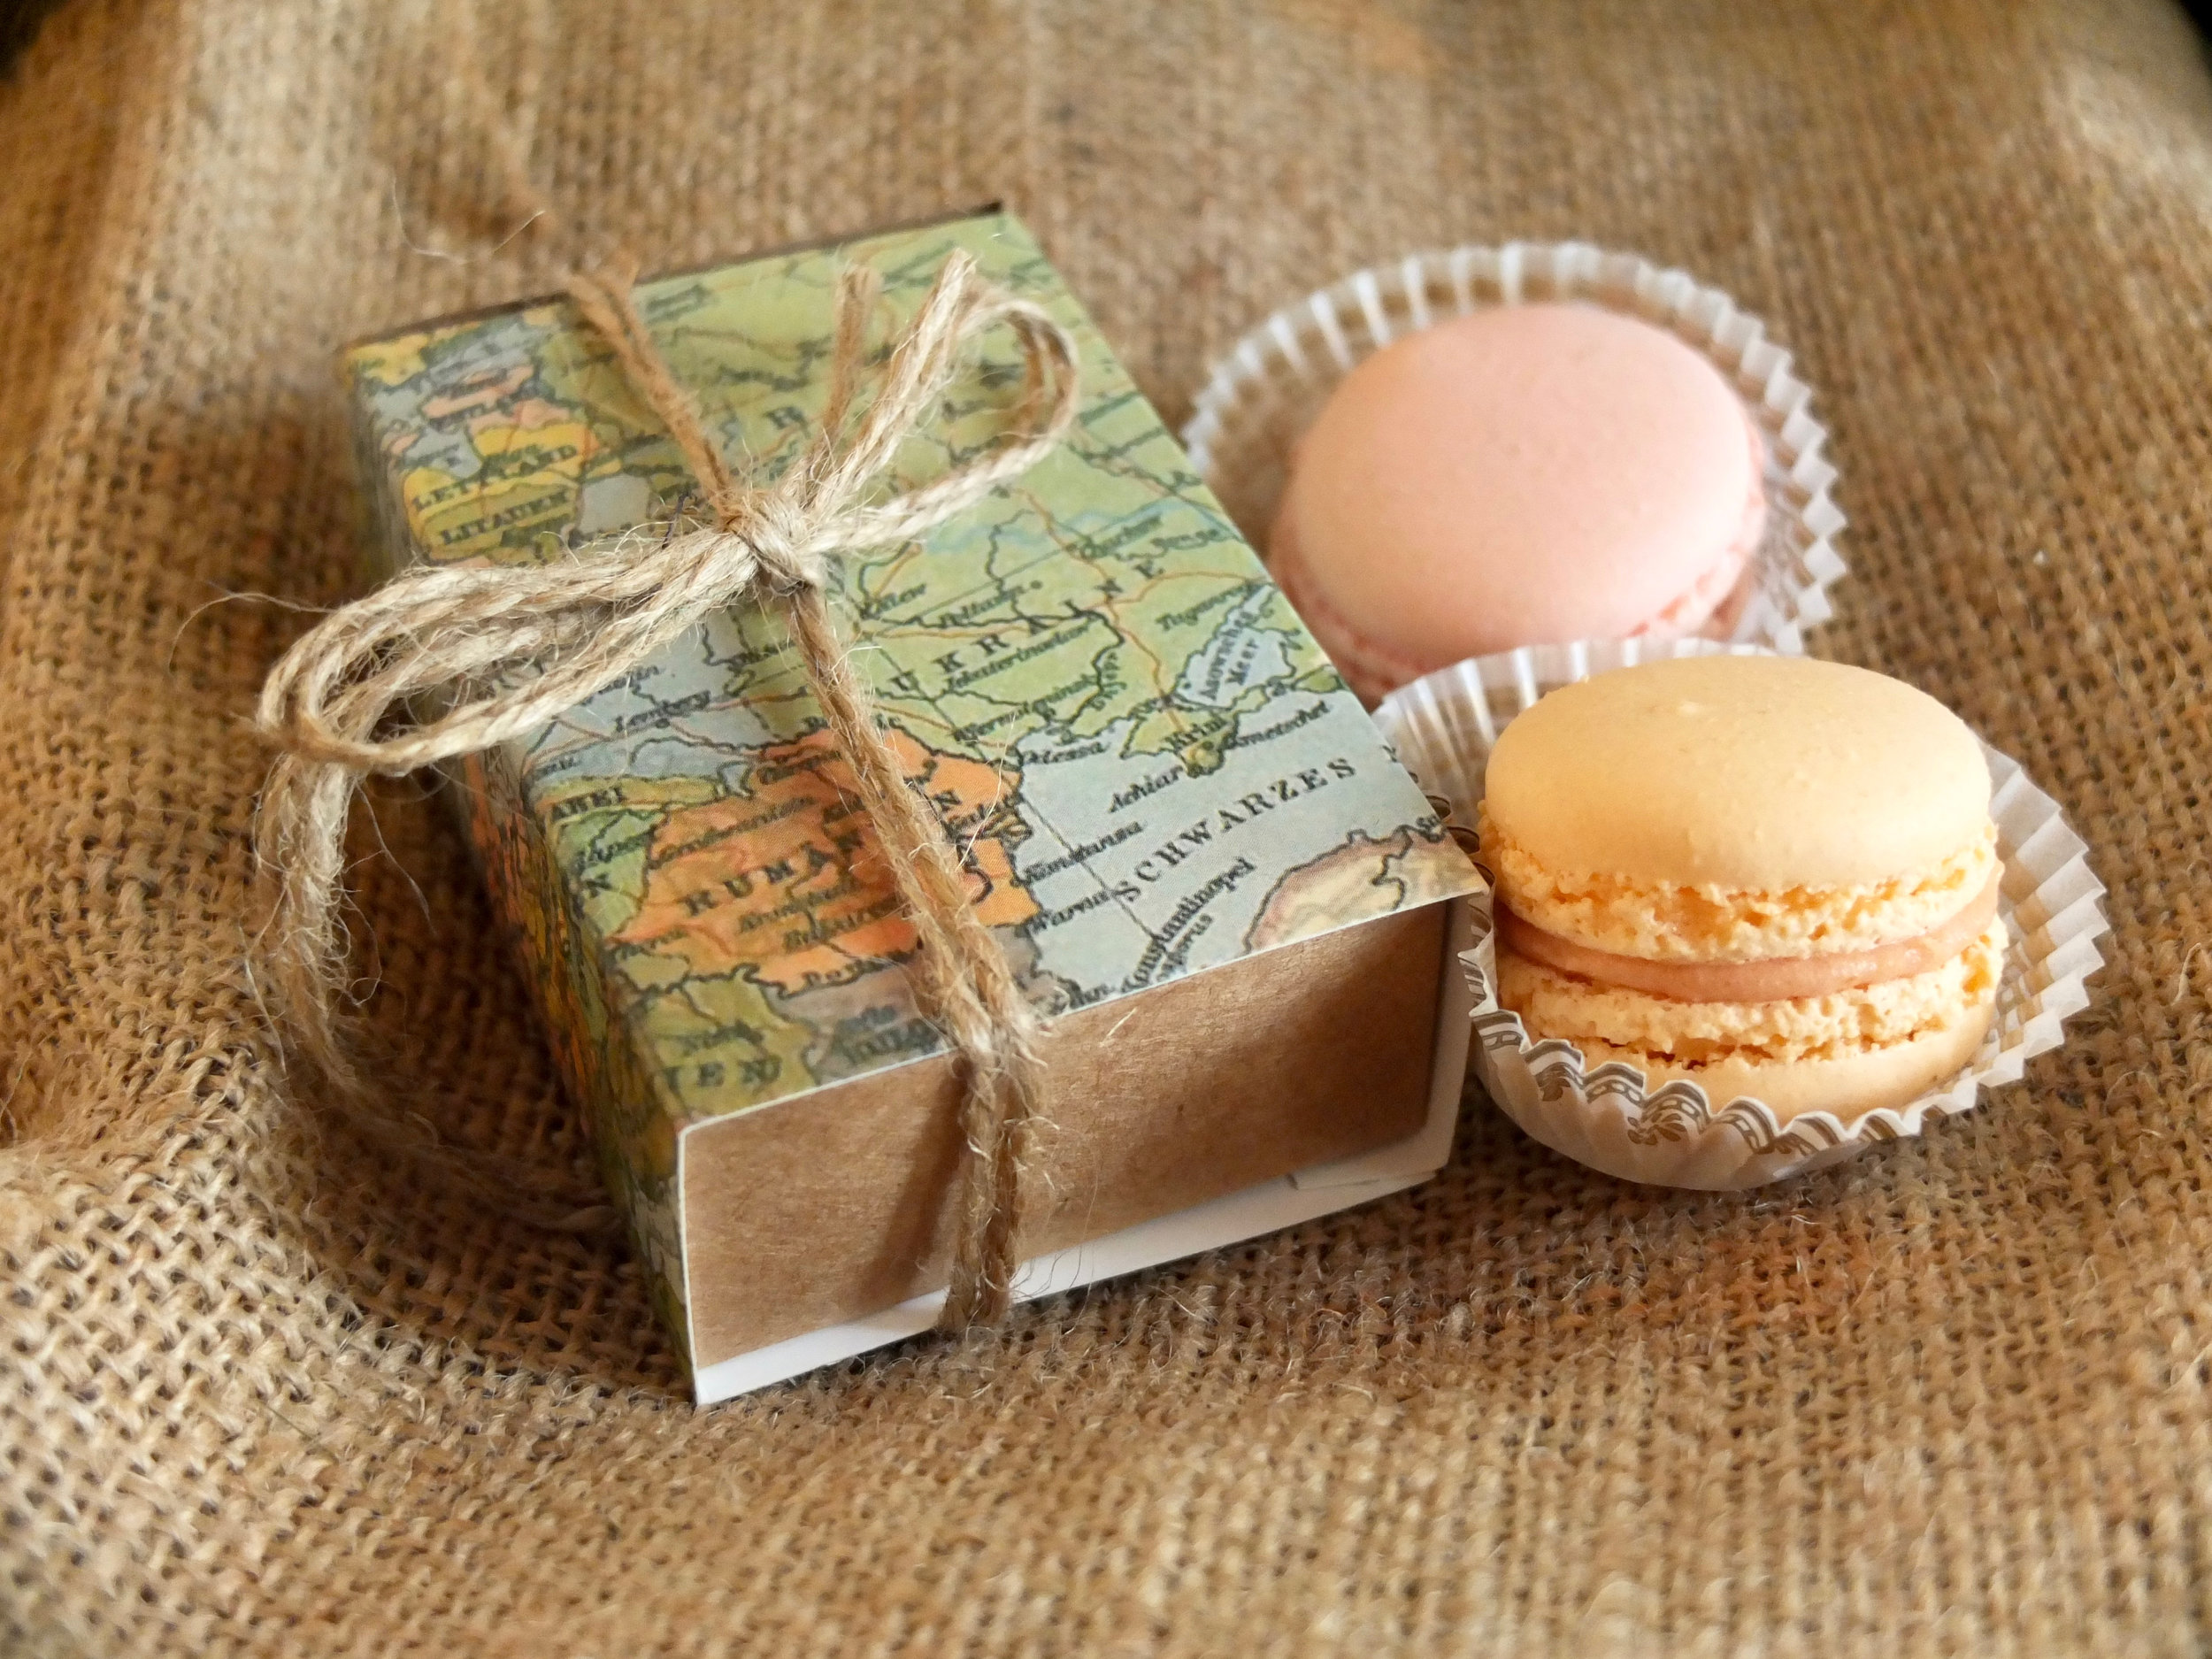 Each place setting included an adorable macaroon gift box wrapped in vintage-style maps.